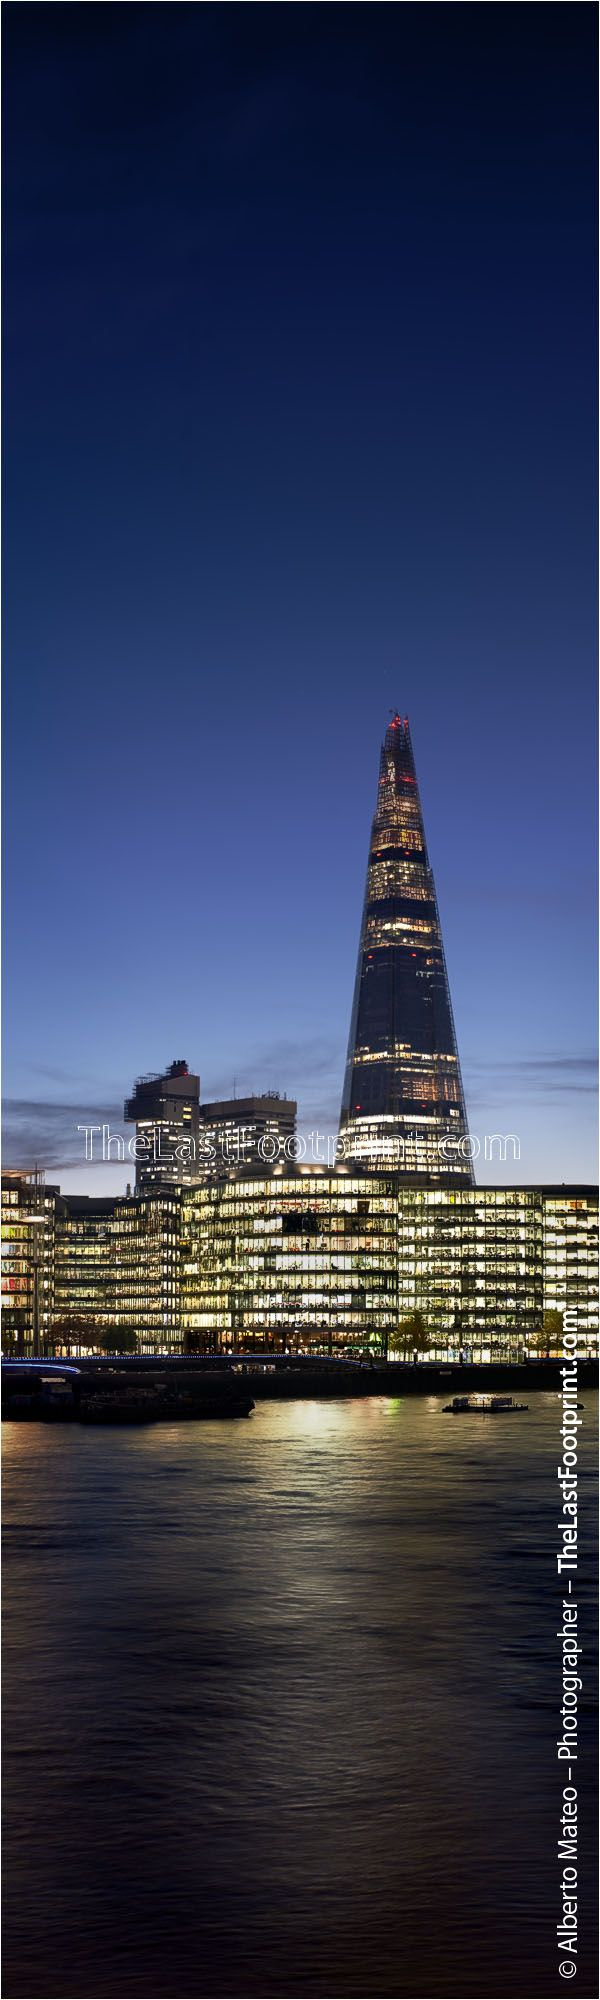 The Shard, London, United Kingdom. This is the last Skyscraper in Europe, it opened last February. Architect: Renzo Piano. This building located at Thames river shore provides a great counterpoint to the classic lines of Tower Bridge. This picture was taken at dusk, on a clear day. The sky was very clean and the artificial lights of the surrounding offices give it a special character.